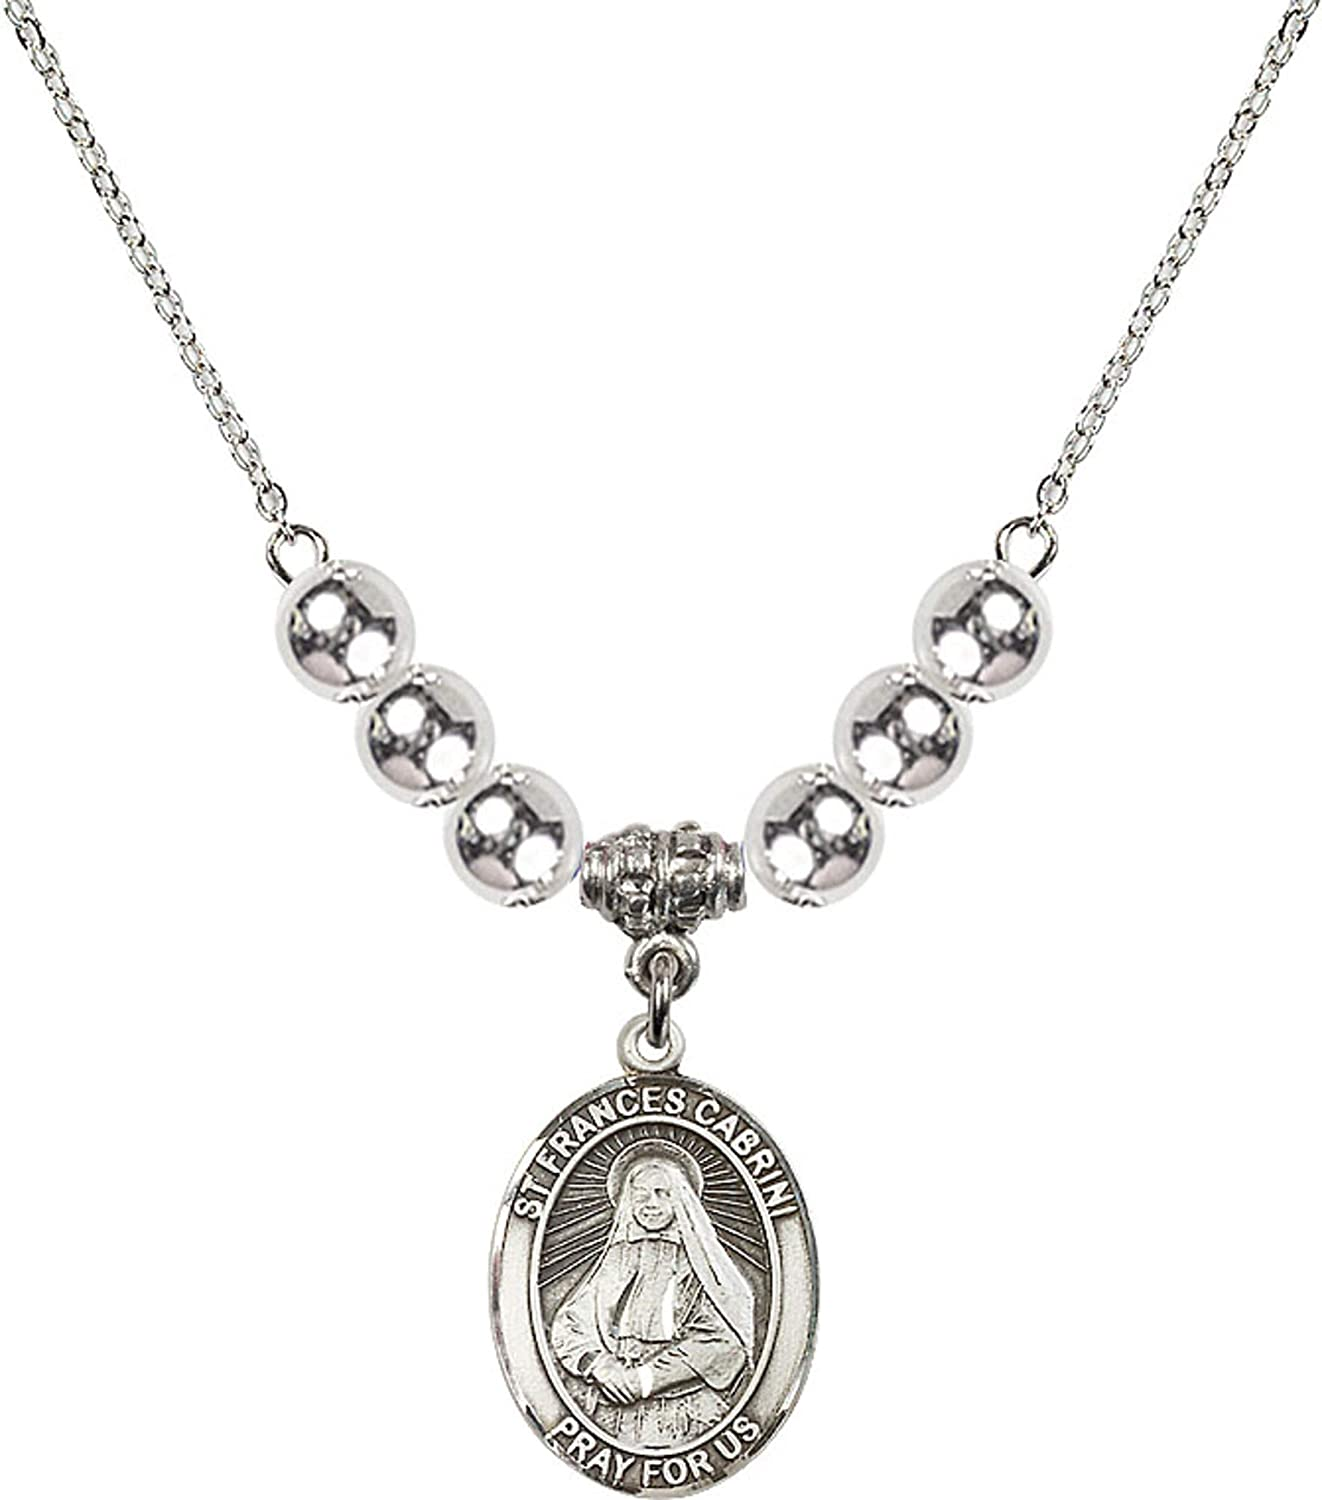 Bonyak Jewelry 18 Inch Rhodium Plated Necklace w// 6mm Sterling Silver Beads and Saint Frances Cabrini Charm